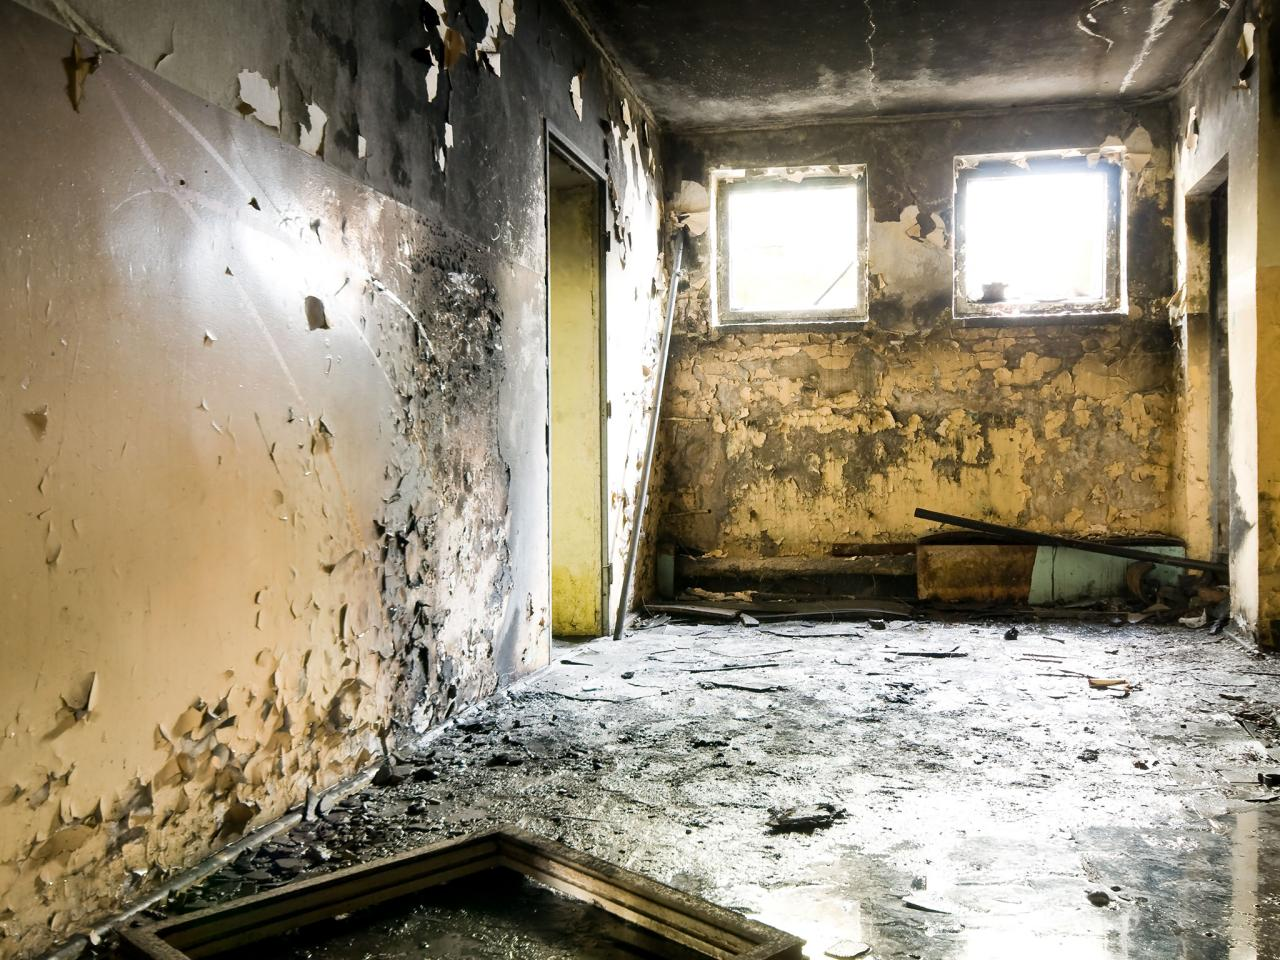 Black Mold Symptoms and Health Effects. Black Mold Symptoms and Health Effects   HGTV